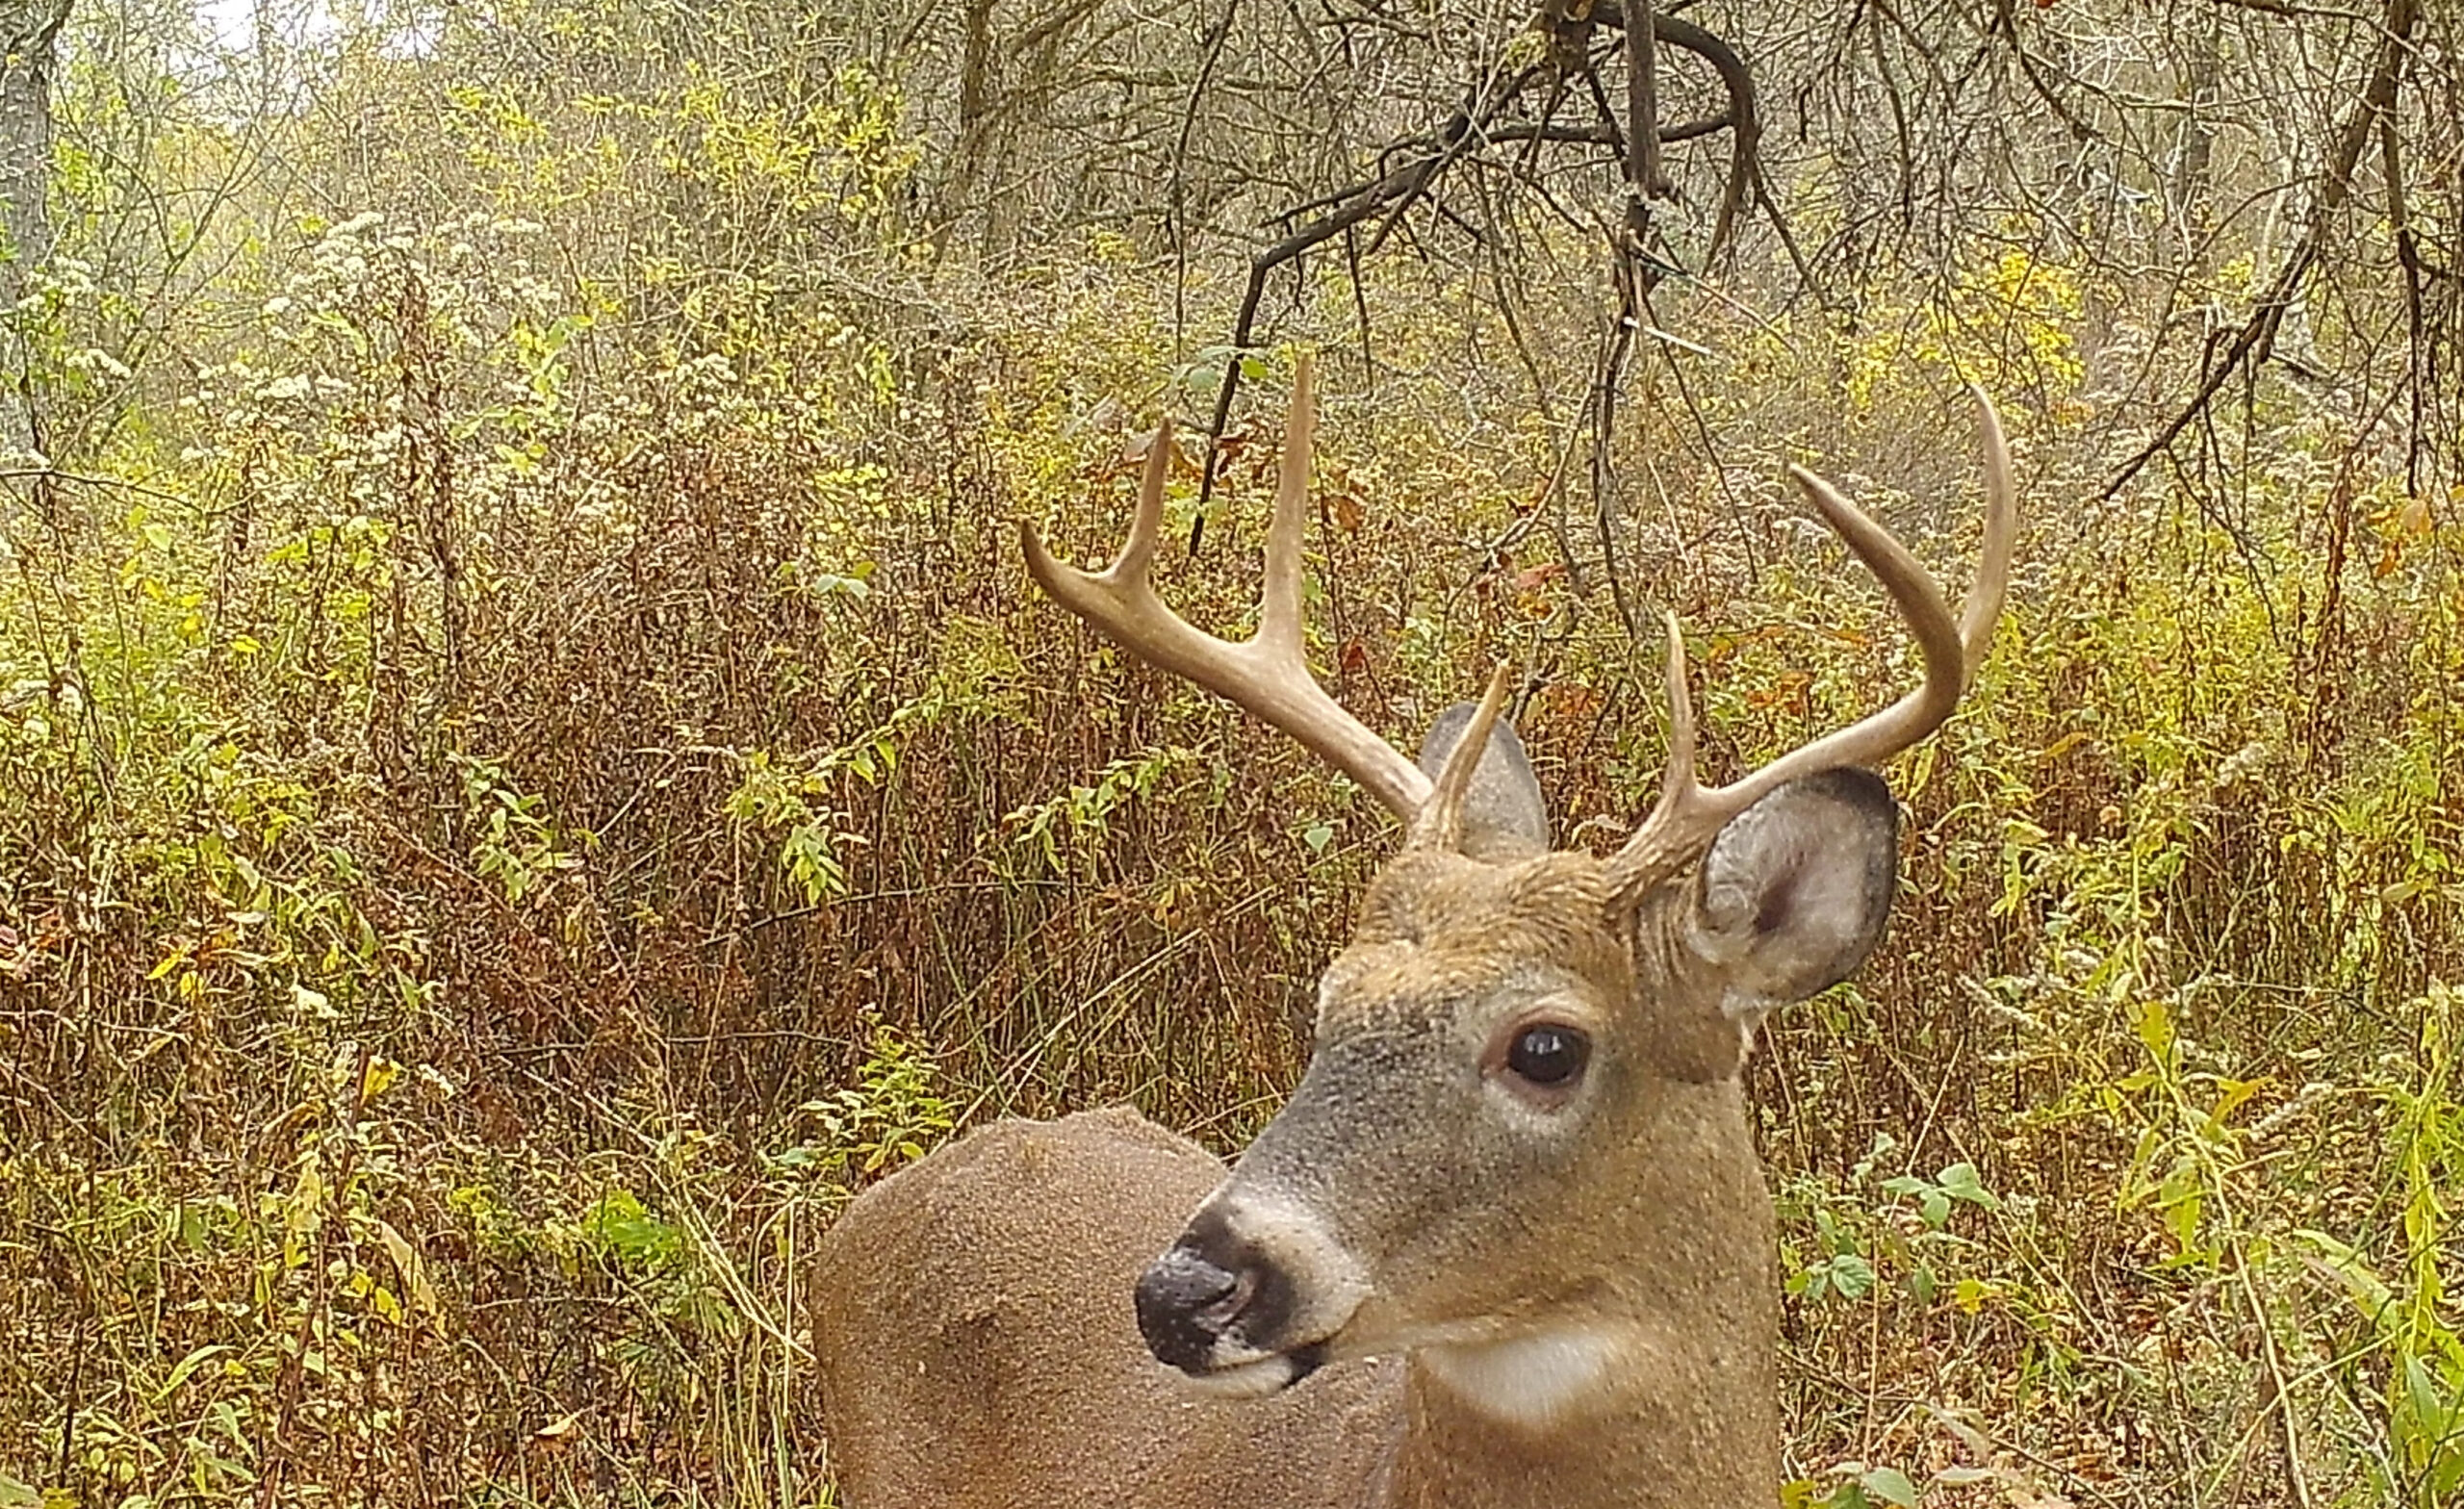 Opening Day Of Deer Season Is Going To Be Exciting, But